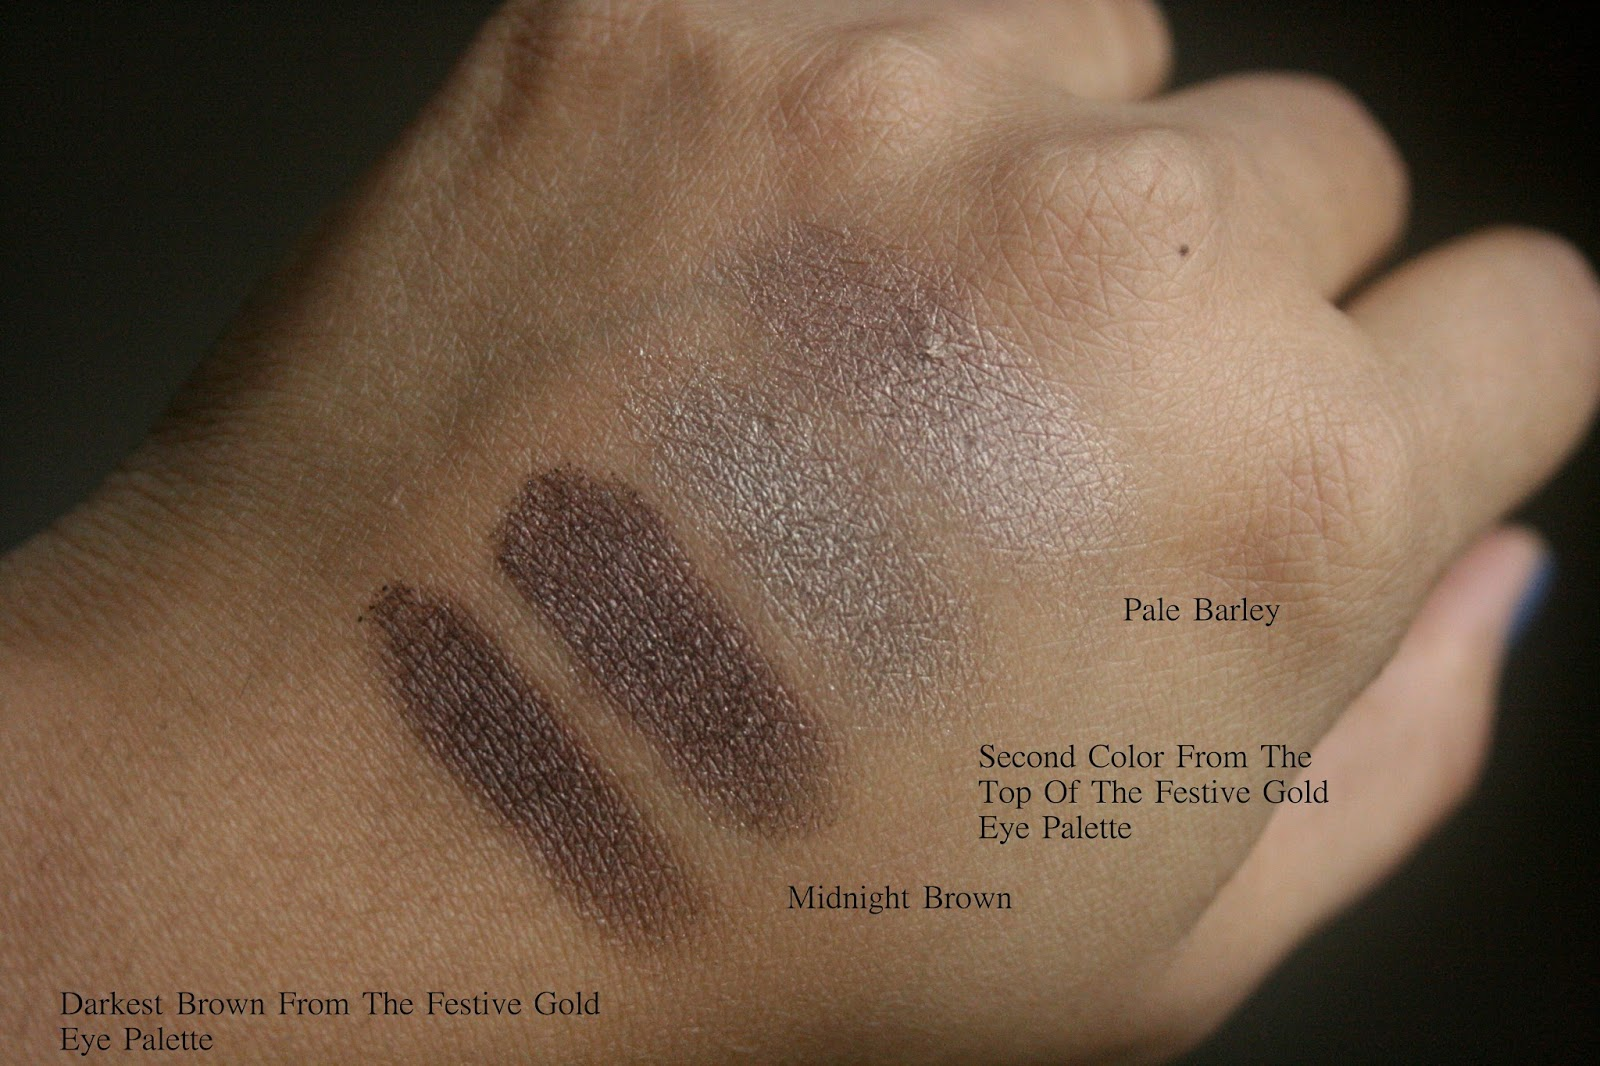 Burberry Beauty Complete Eye Palette in Gold No.25 Swatches Comparison to pale barley and mignight brown Swatches